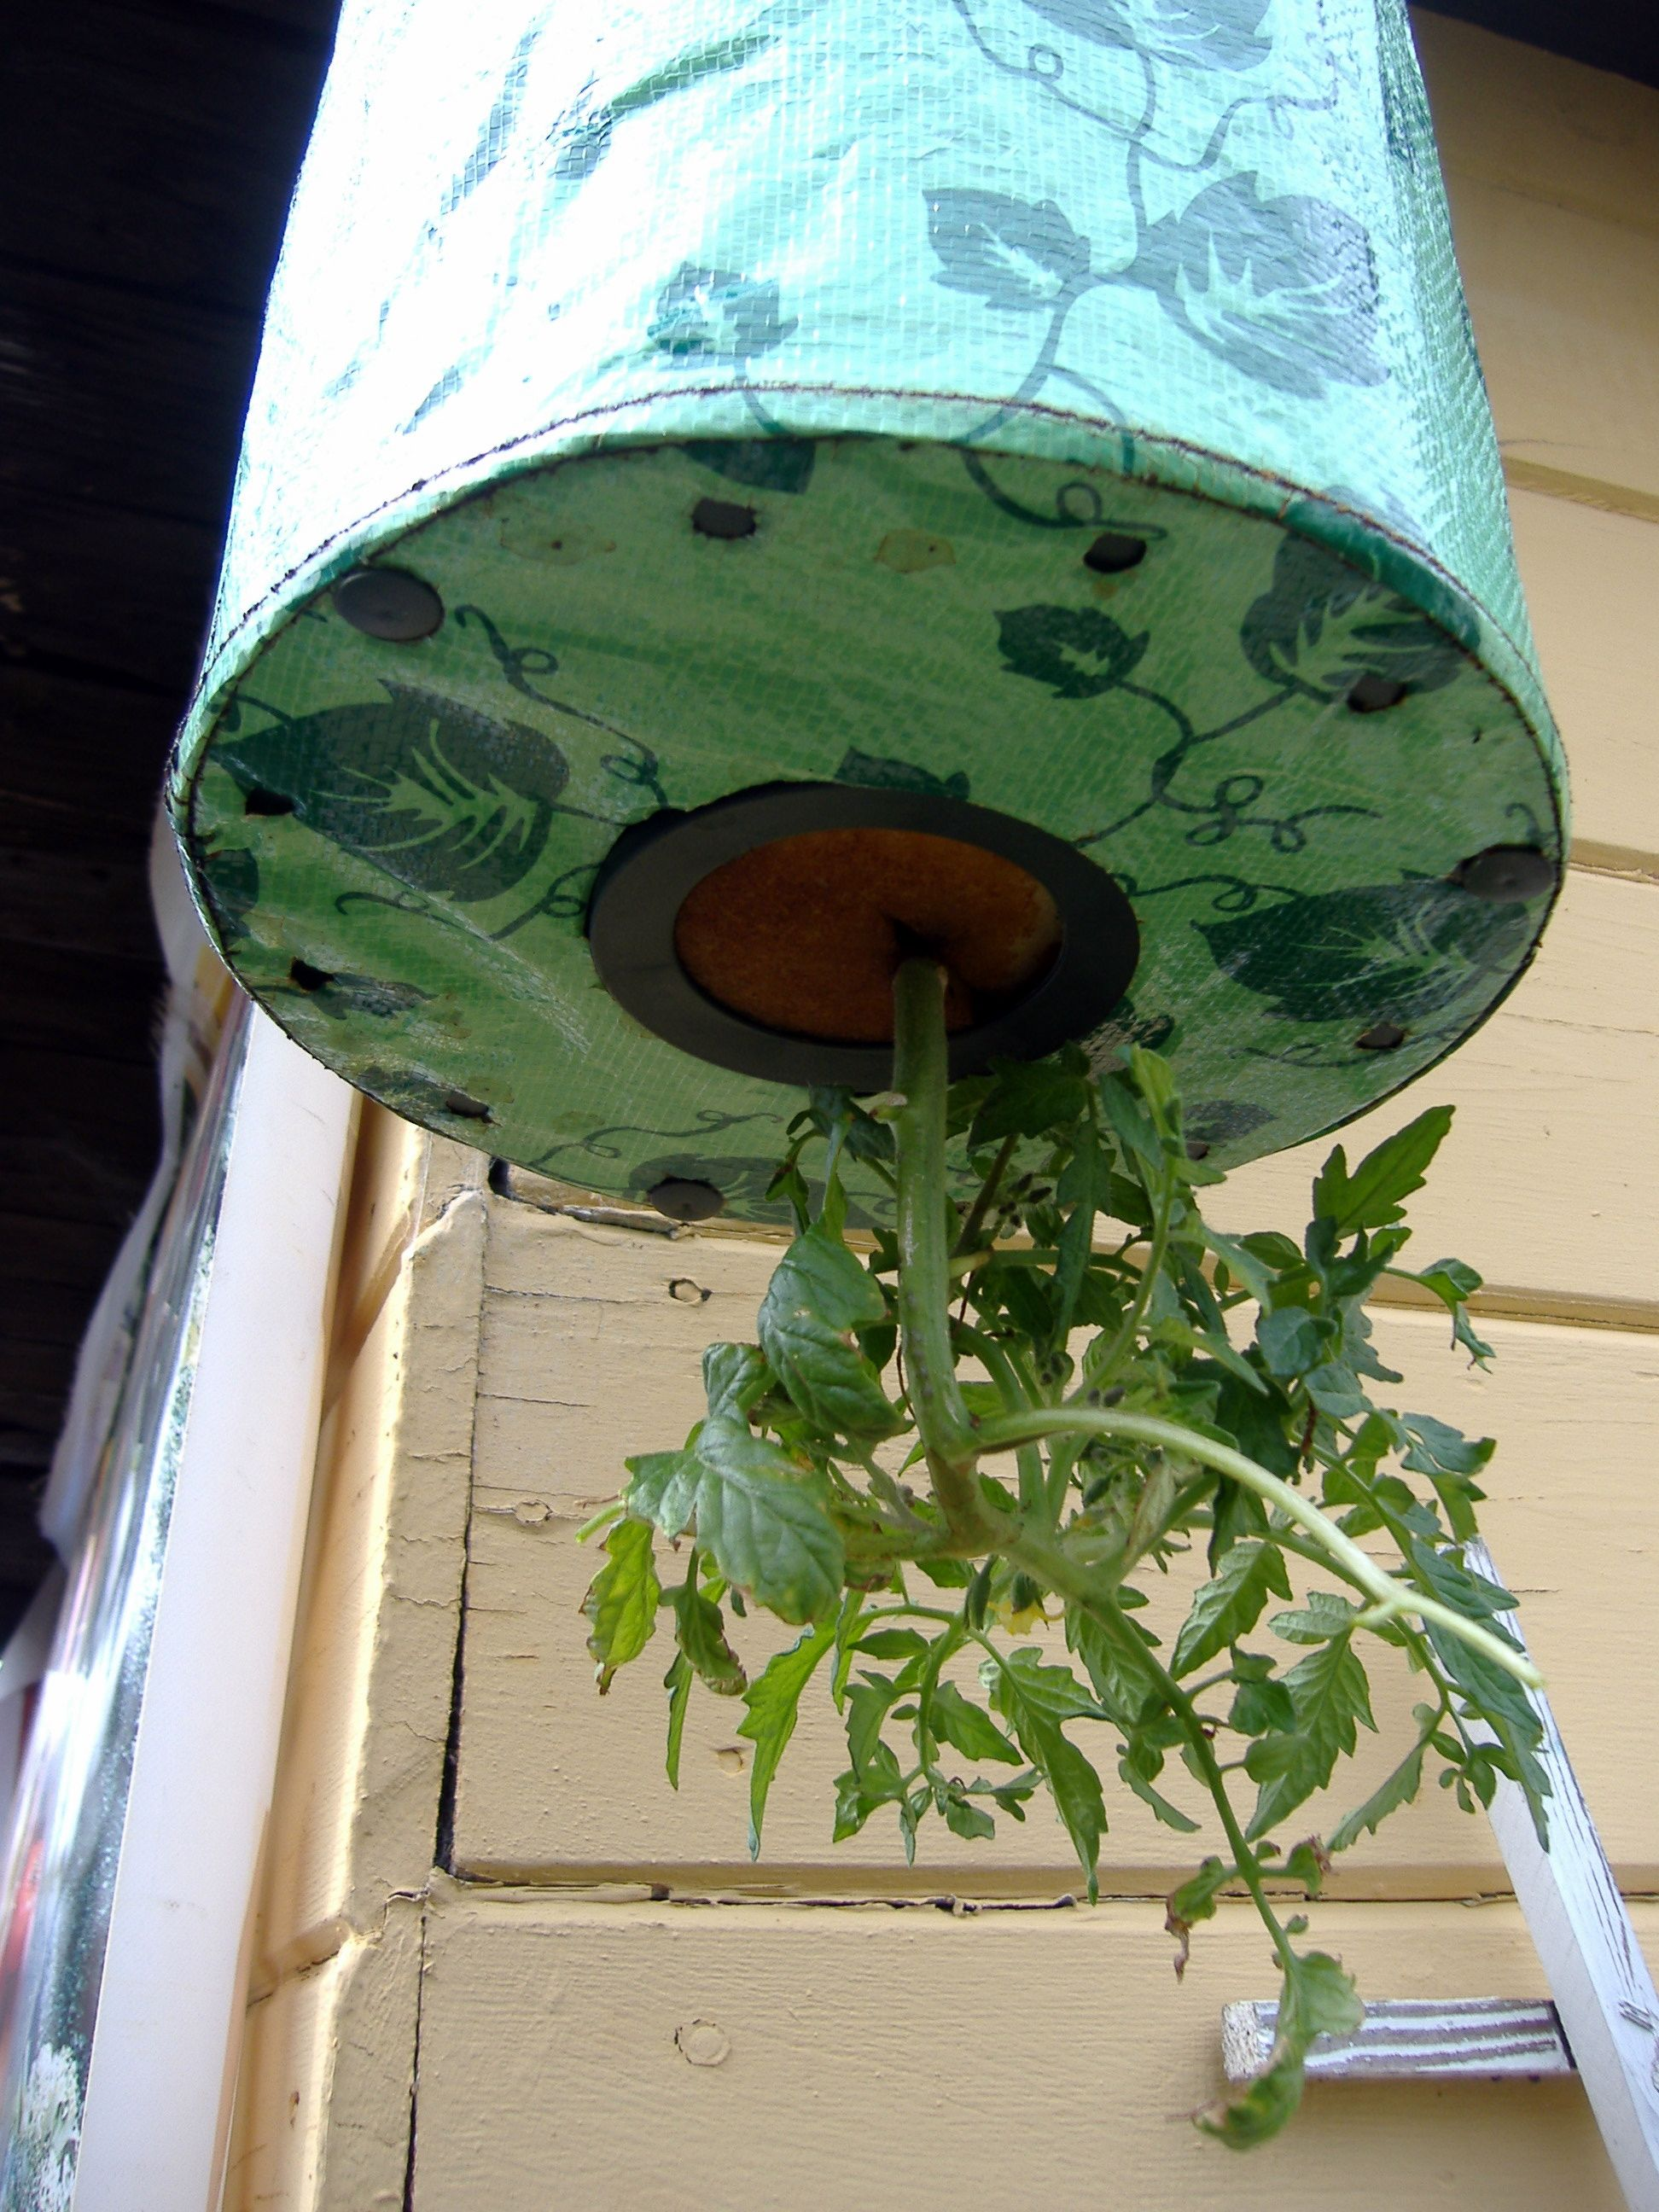 How To Make Your Own Homemade Topsy Turvy Garden Planter